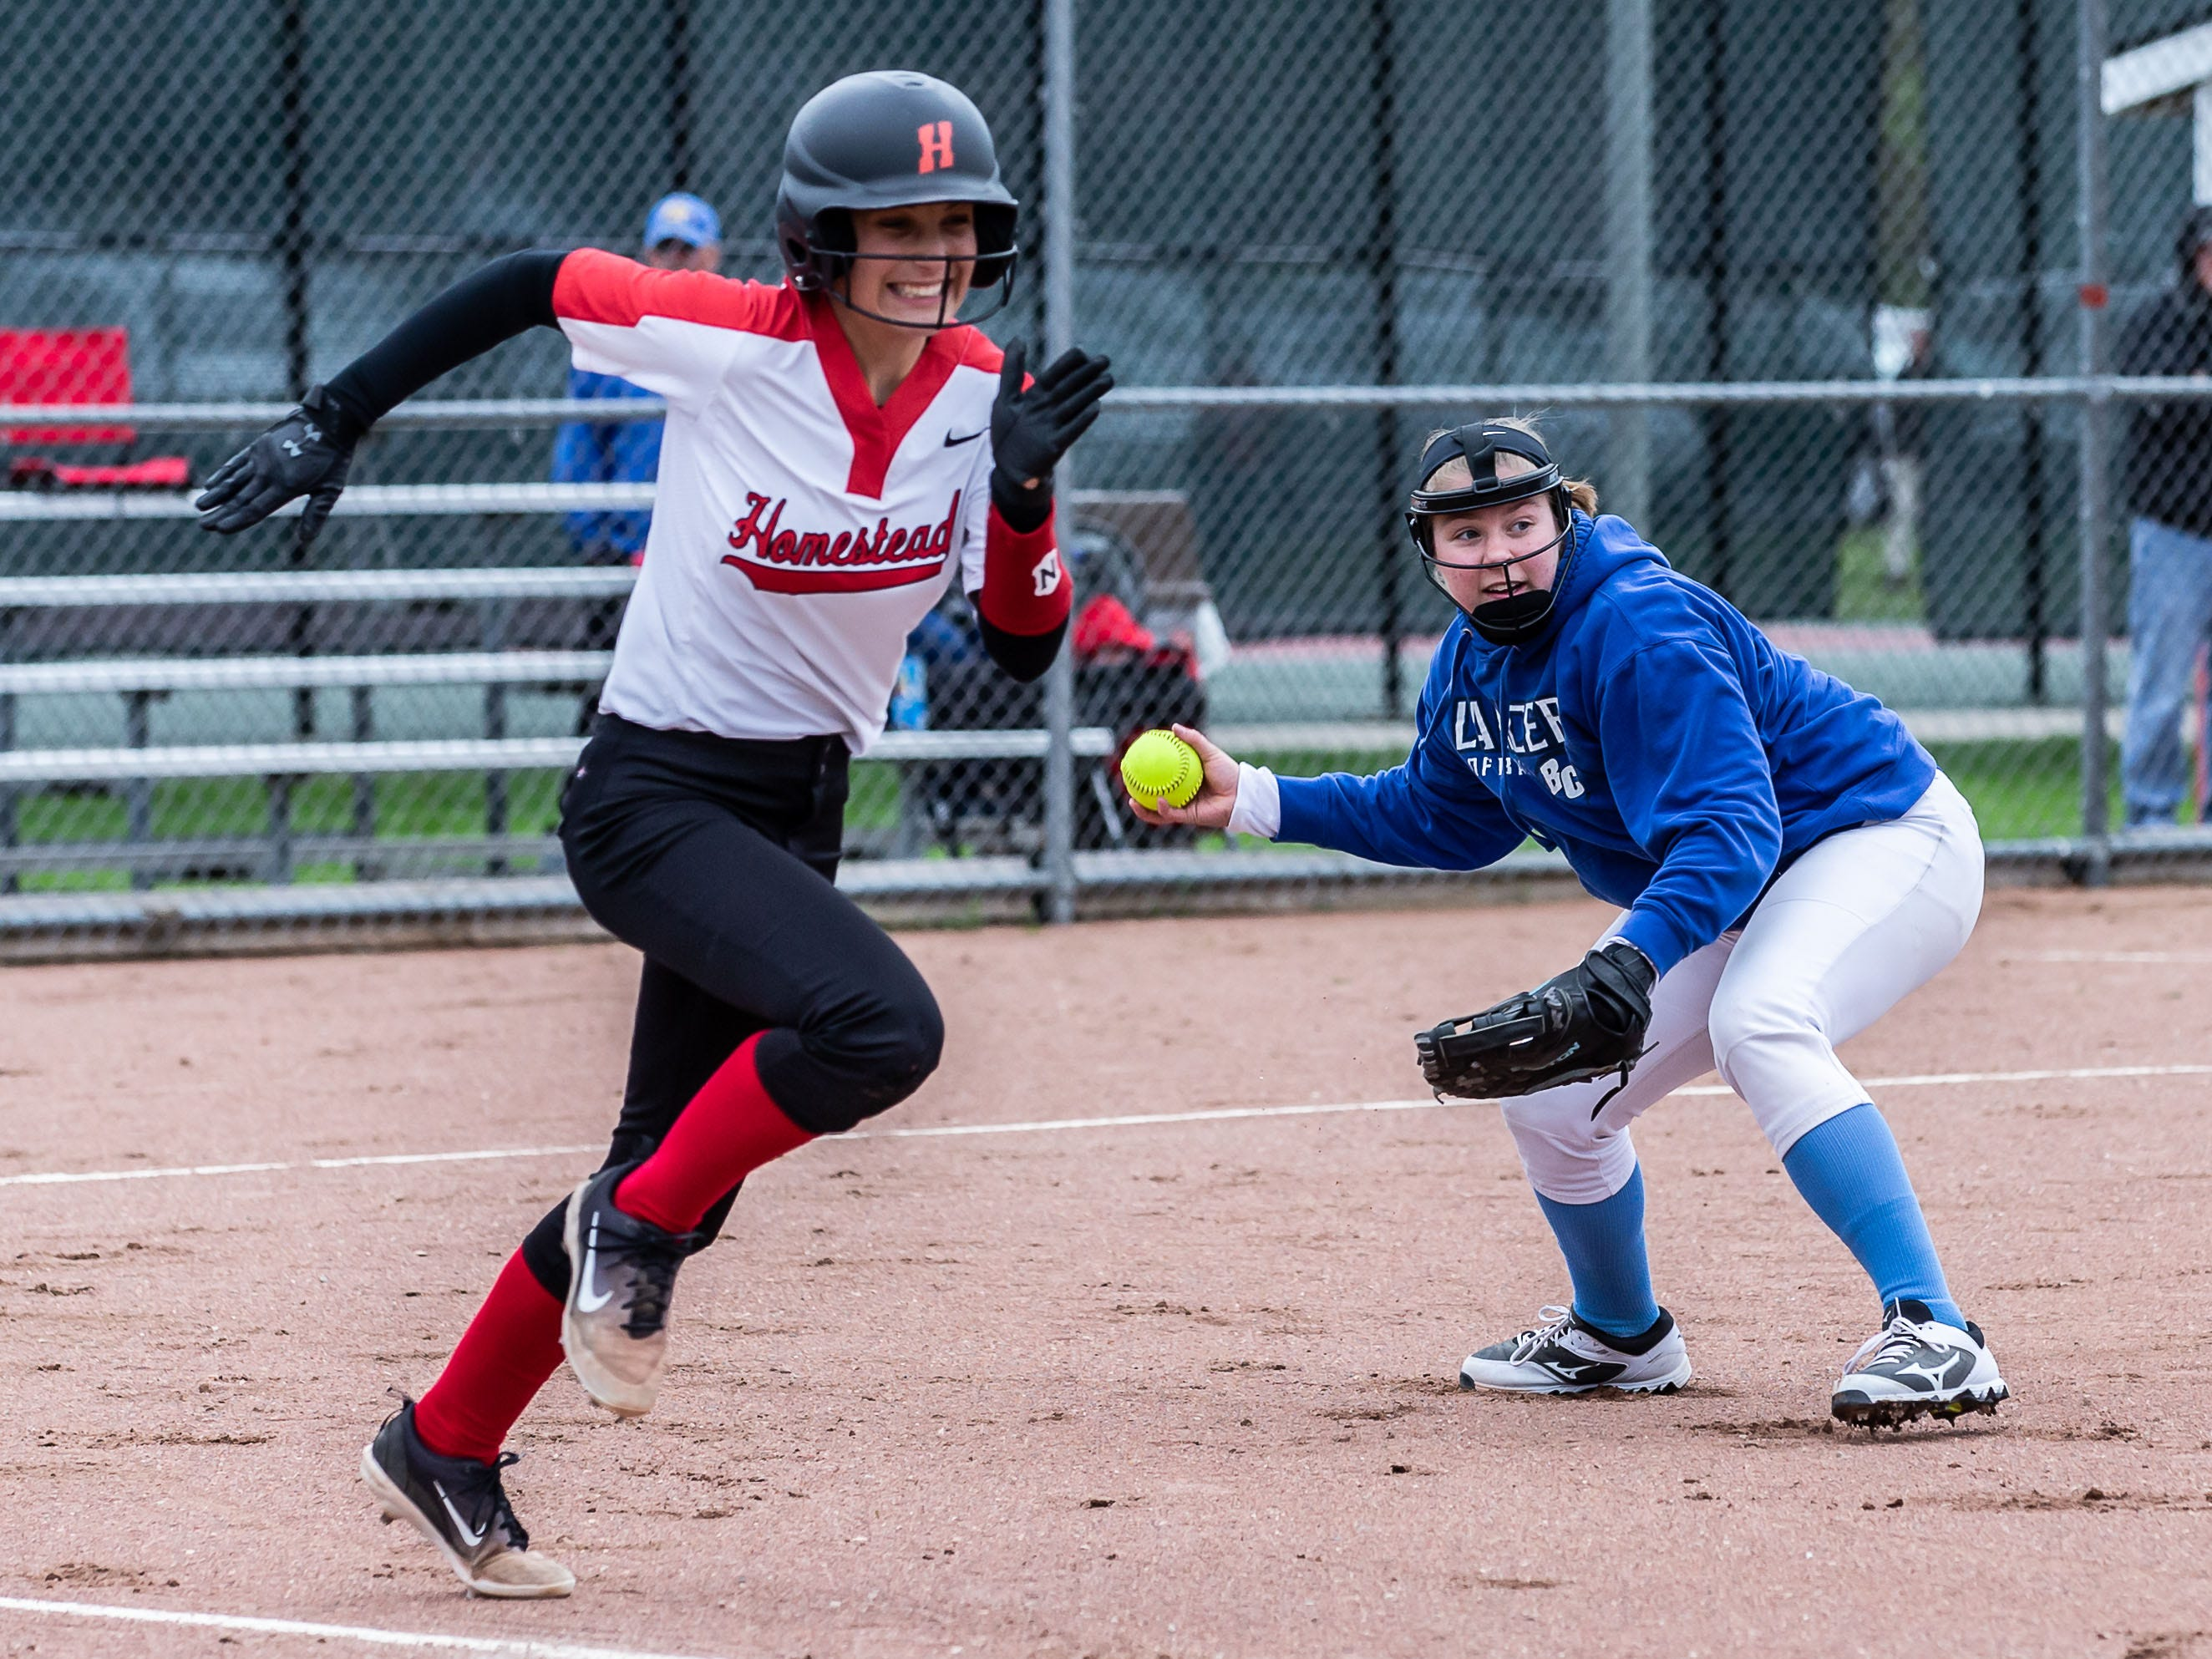 Homestead's Lauren Curtis (4) races for first as Brookfield Central first baseman Kate Burzynski prepares to throw her out during the regional game at Homestead on Tuesday, May 21, 2019.